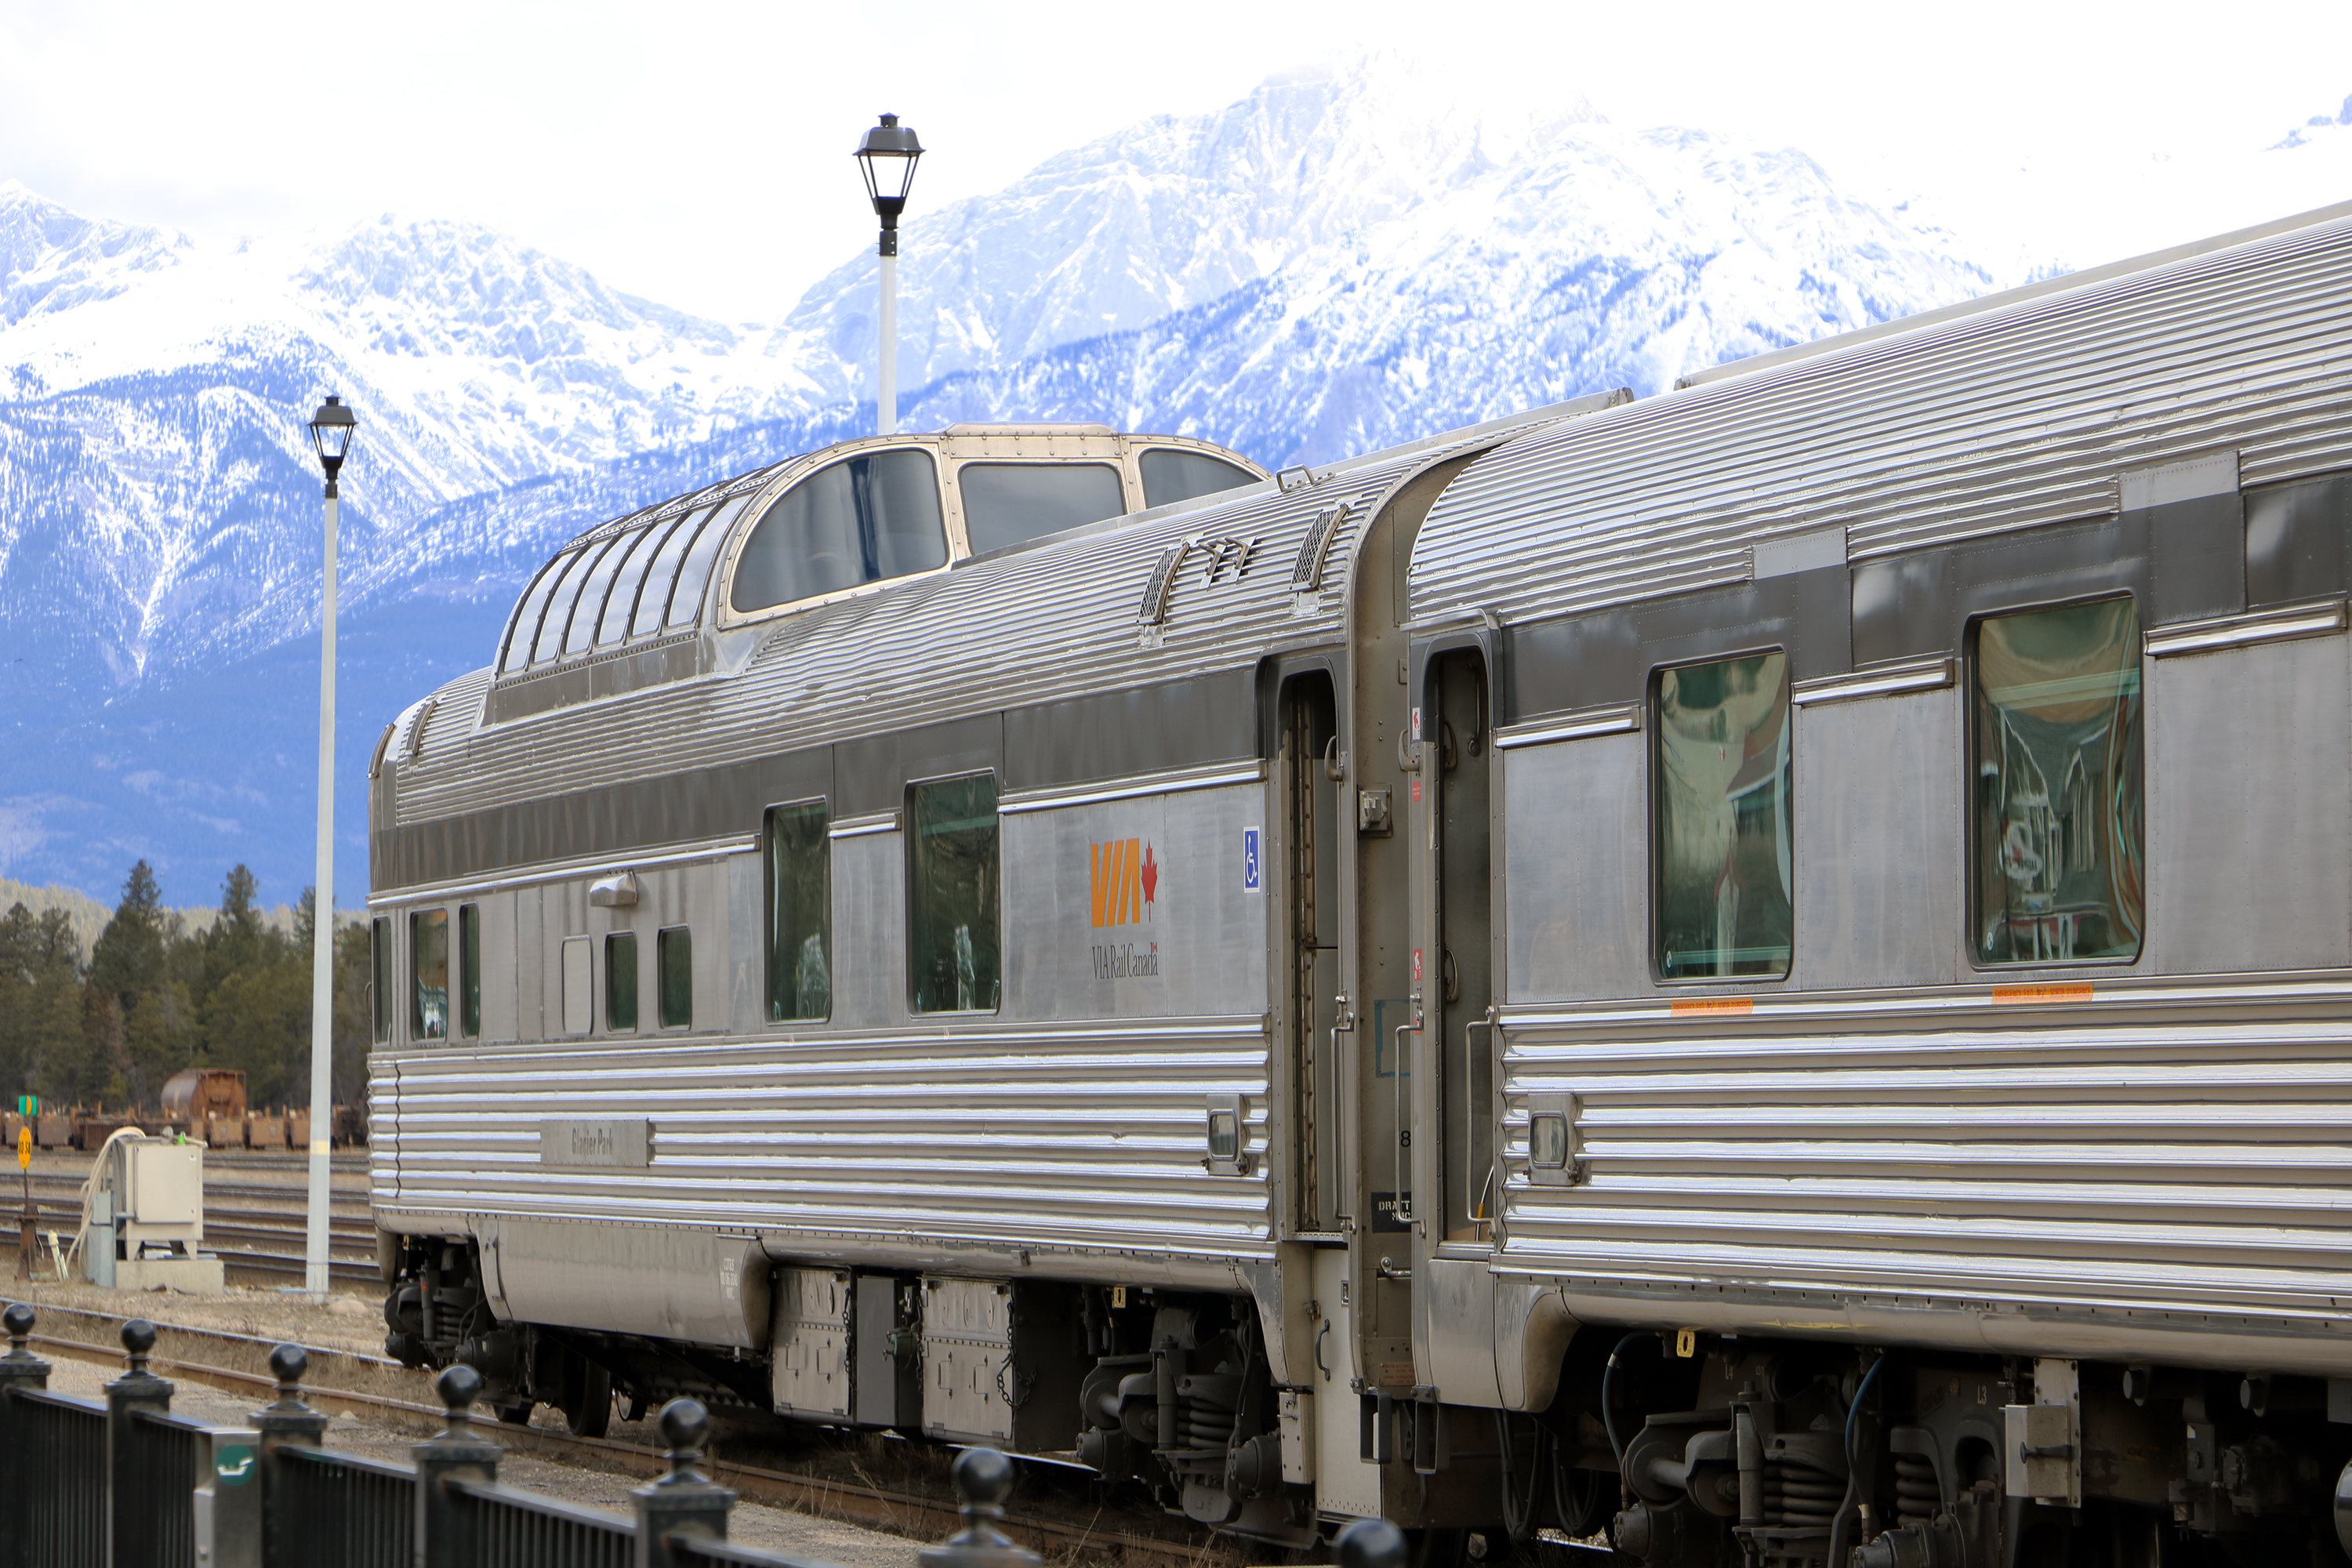 Observation car in Jasper